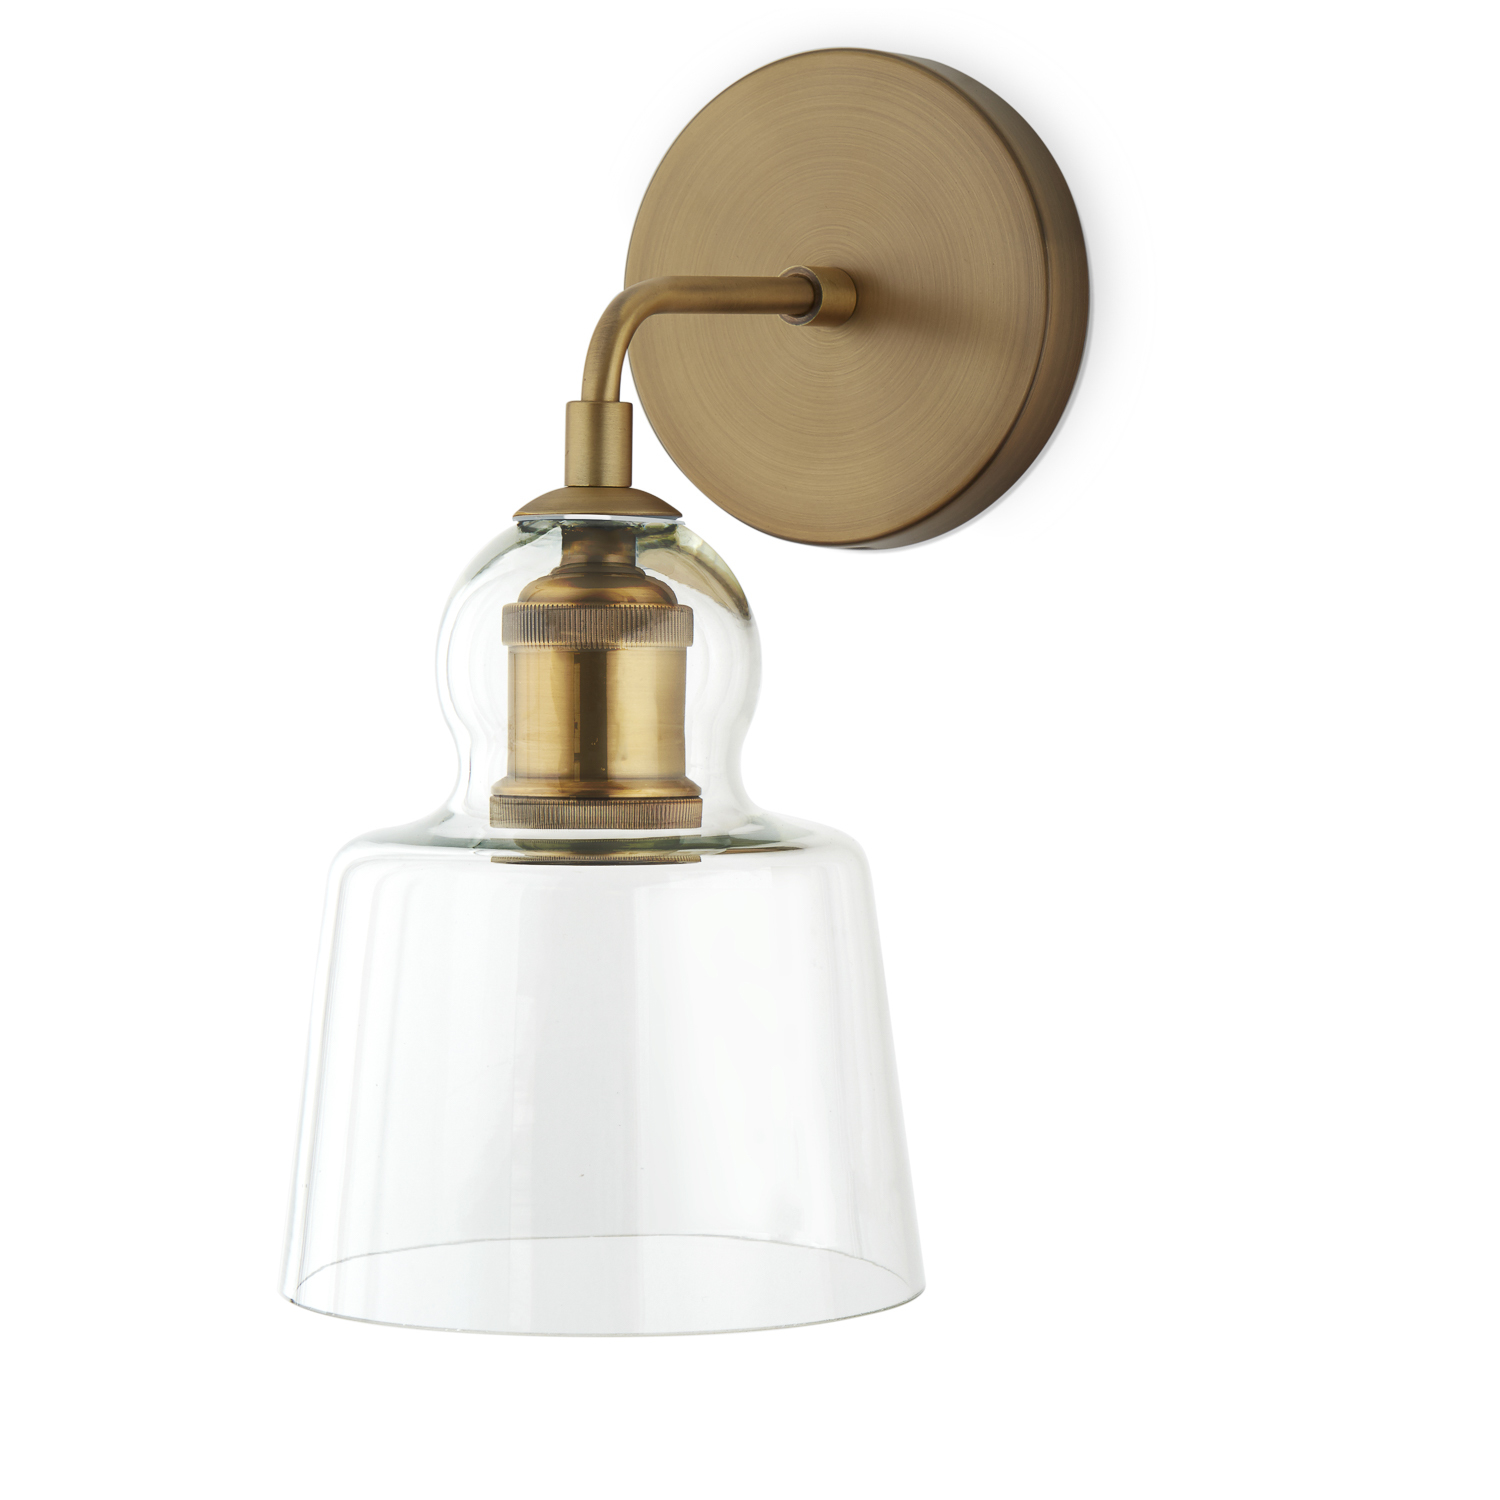 Drawstring Wall Lights : Lights.com Wall Lights Hoyt Wall Sconce with Tapered Bell Glass, Aged Brass